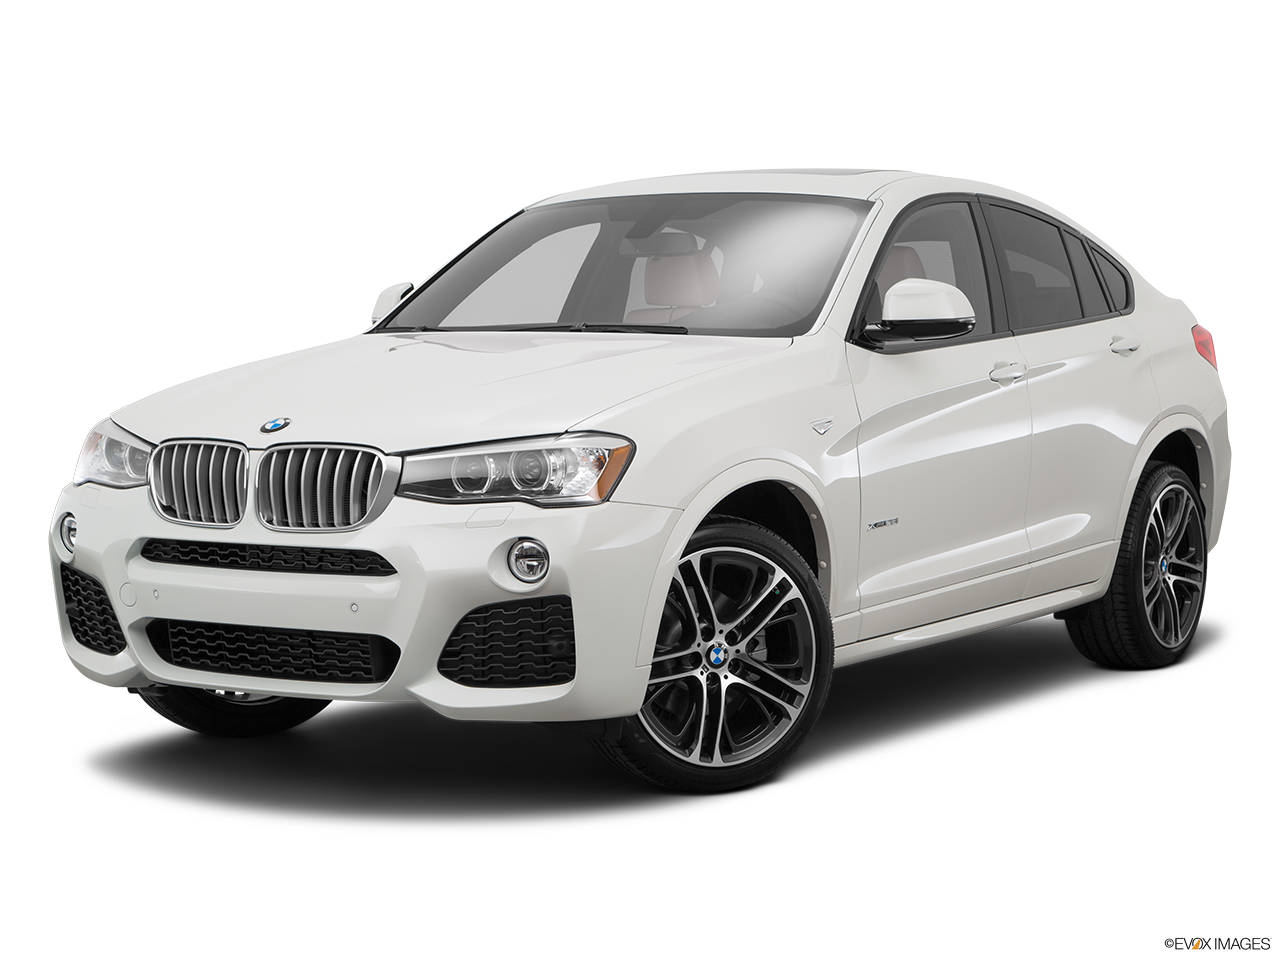 Comparison Bmw X4 Xdrive35i 2016 Vs Bmw X3 Xdrive 35i 2016 Suv Drive